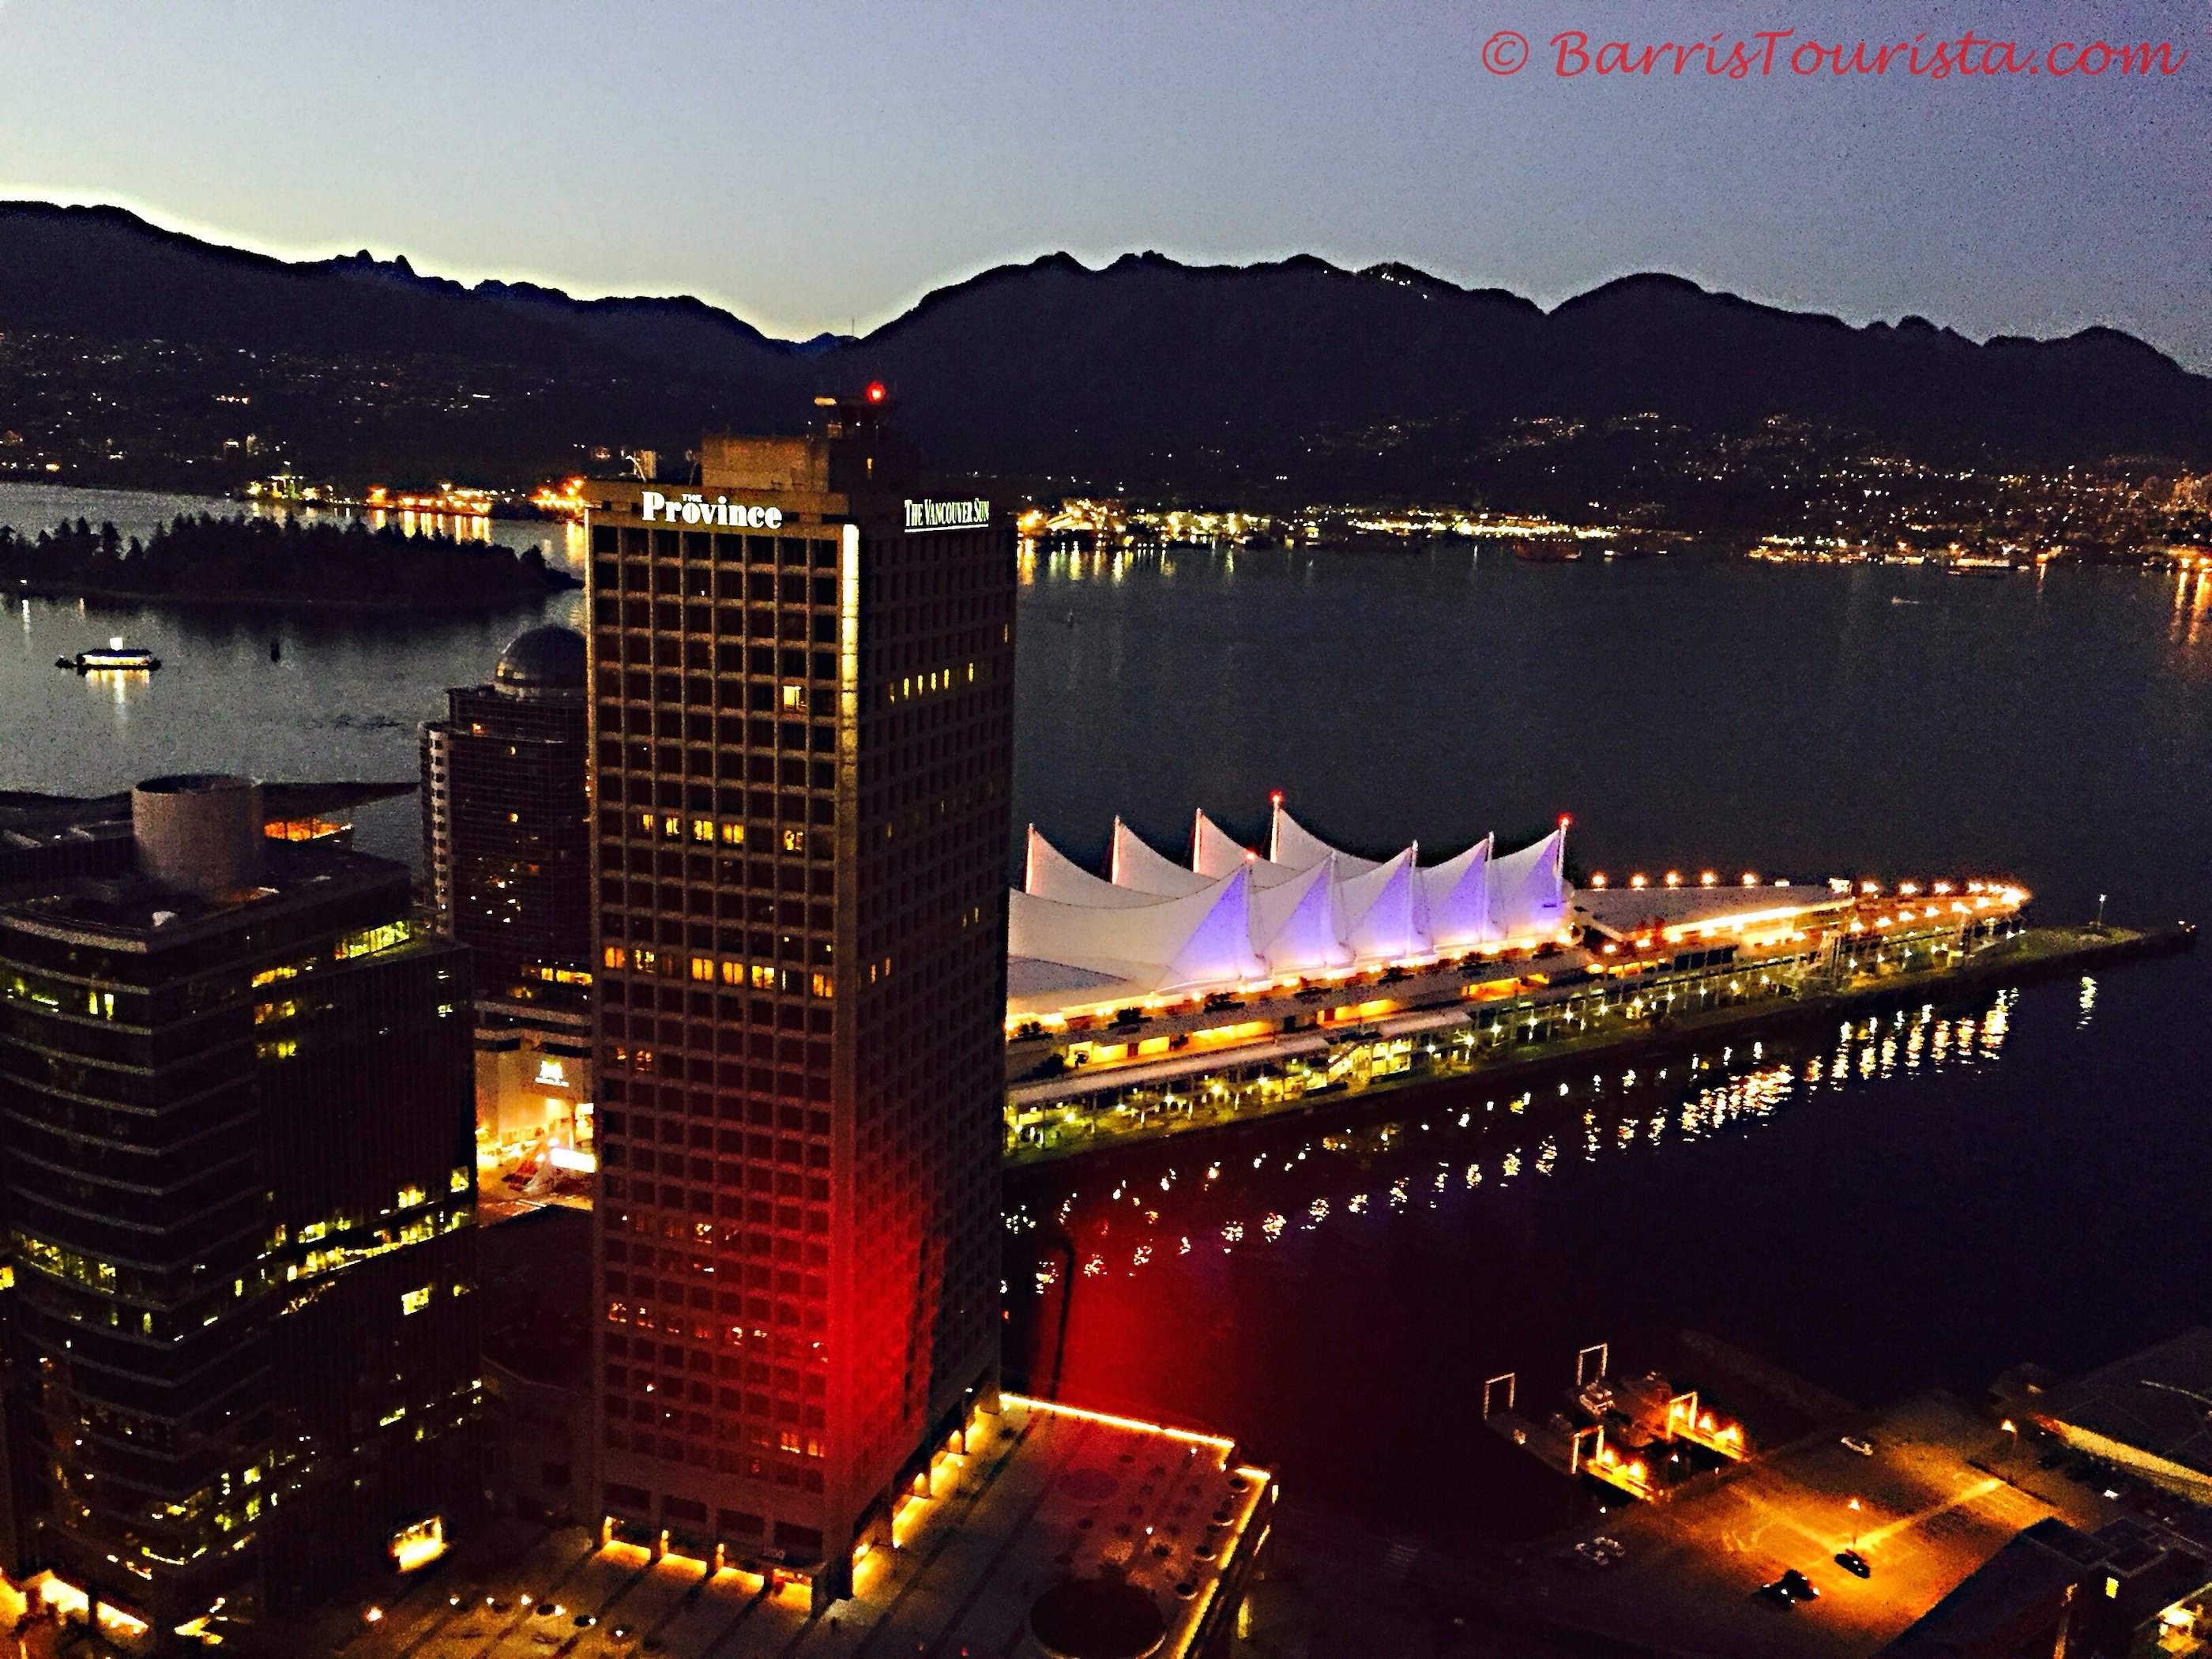 BarrisTourista-Vancouver Lookout Night